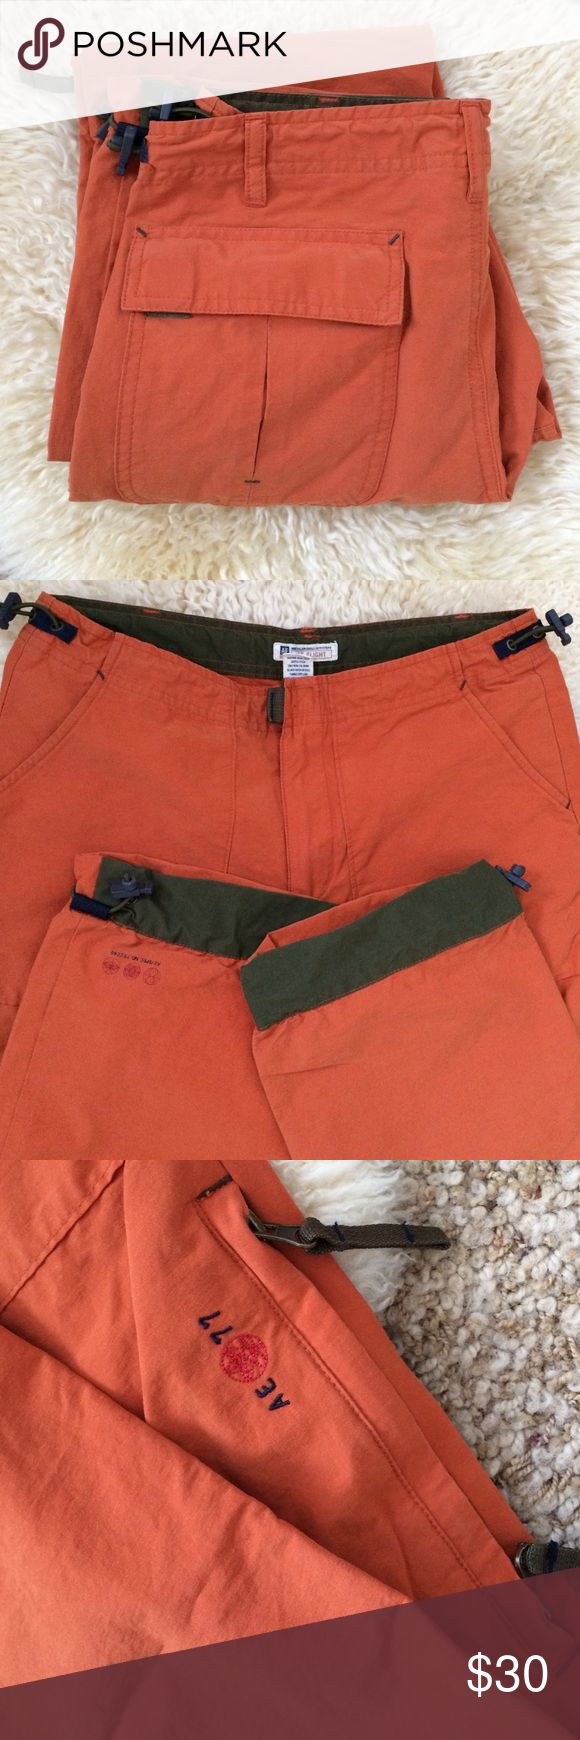 """AEO Flight Cargo Pants Excellent pair of Cargos for hiking and mountain activities. Good condition, no stains or holes and have minor fading.  30"""" inseam. Top across measures 13.5"""" (so 27"""" waist) with the drawstrings undone, but they run small so will fit 23-25"""" waists best in my opinion. American Eagle Outfitters Pants Straight Leg"""